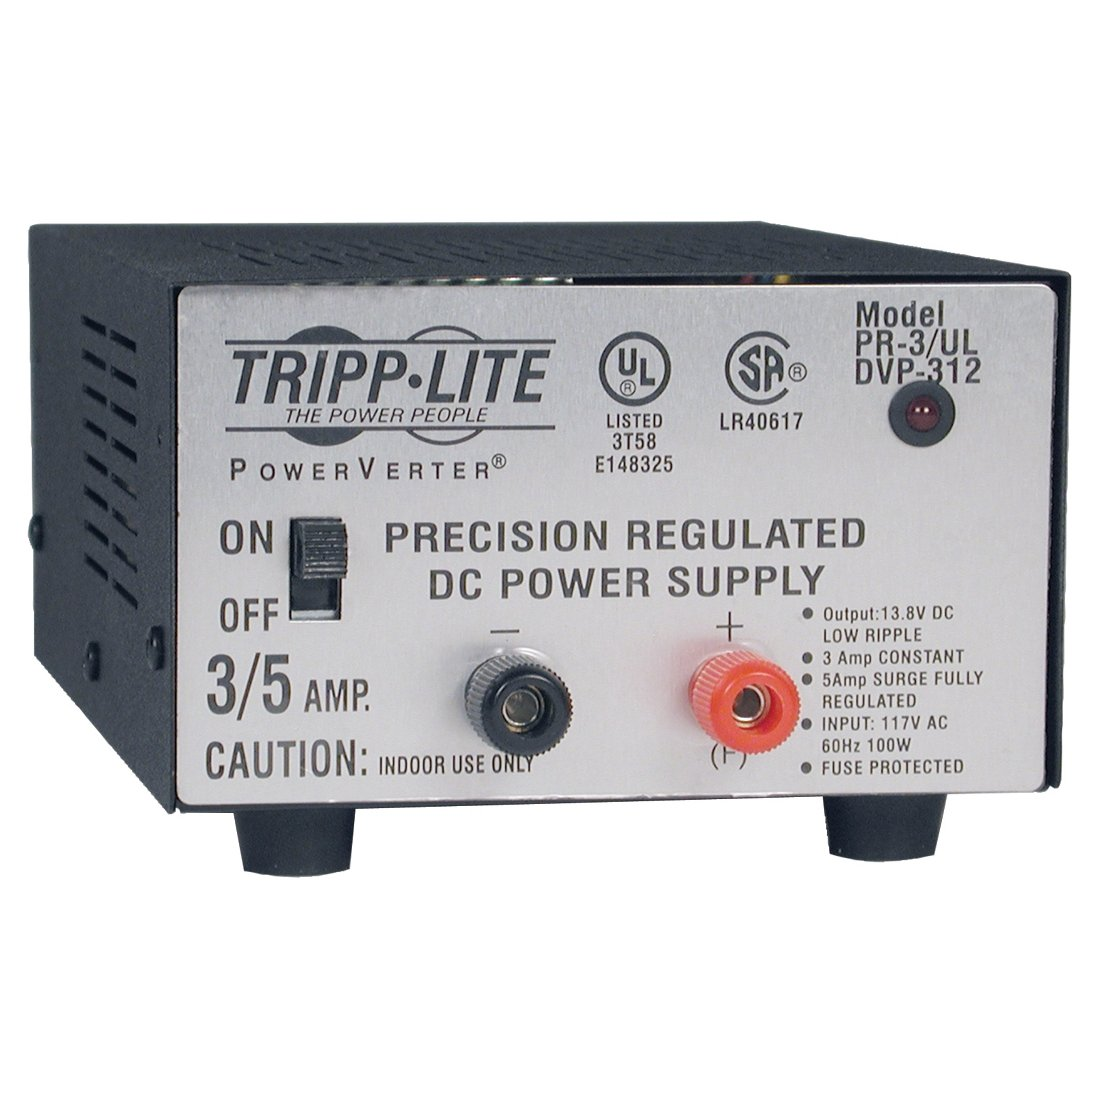 Tripp Lite Pr 3ul Dc Power Supply 3a 120v Ac Input To Simple 8amp Regulated Circuit Diagram 138 Output Ul Certified Electronics